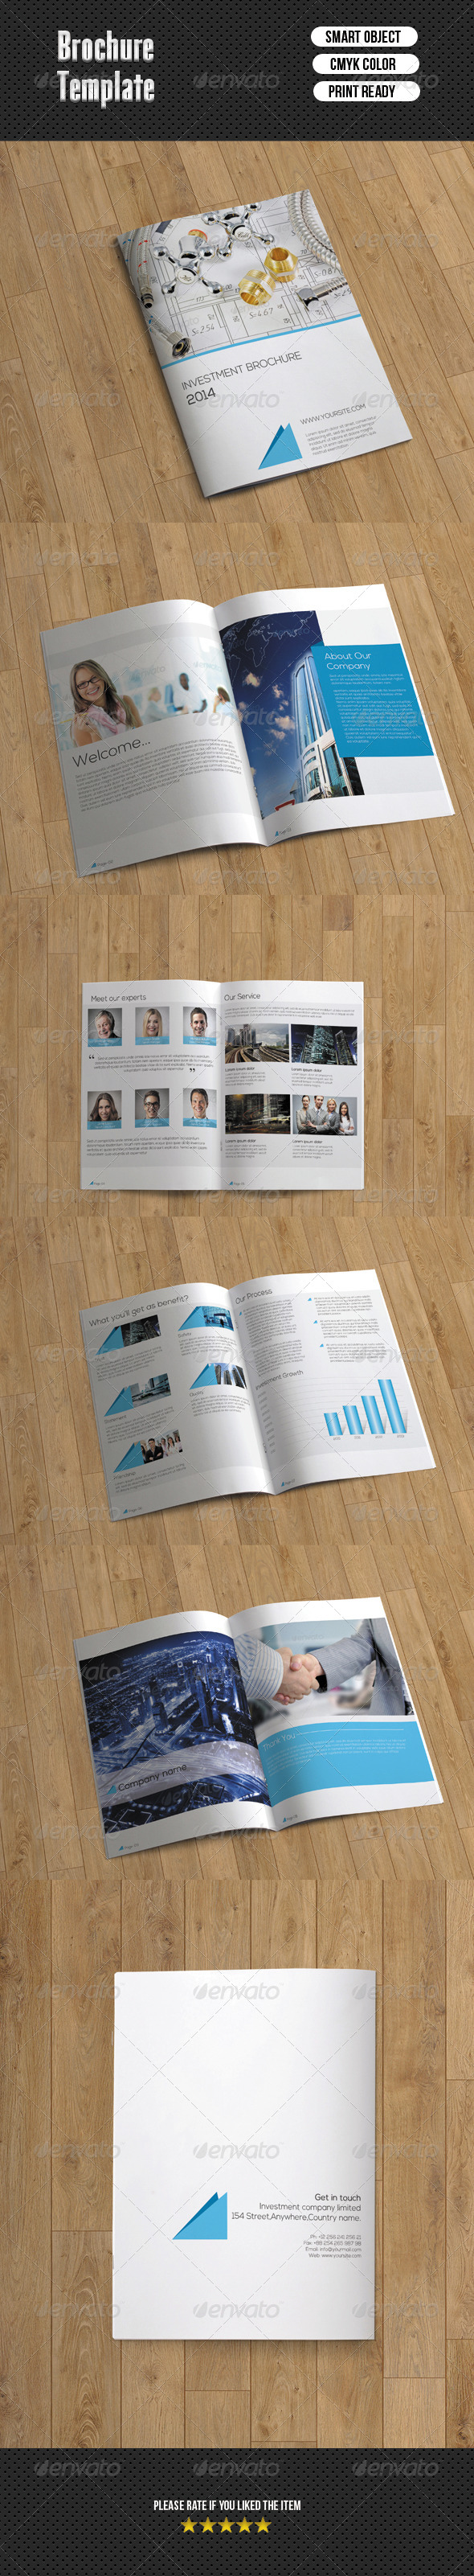 Bifold Brochure-Business (10 Pages) - Corporate Brochures